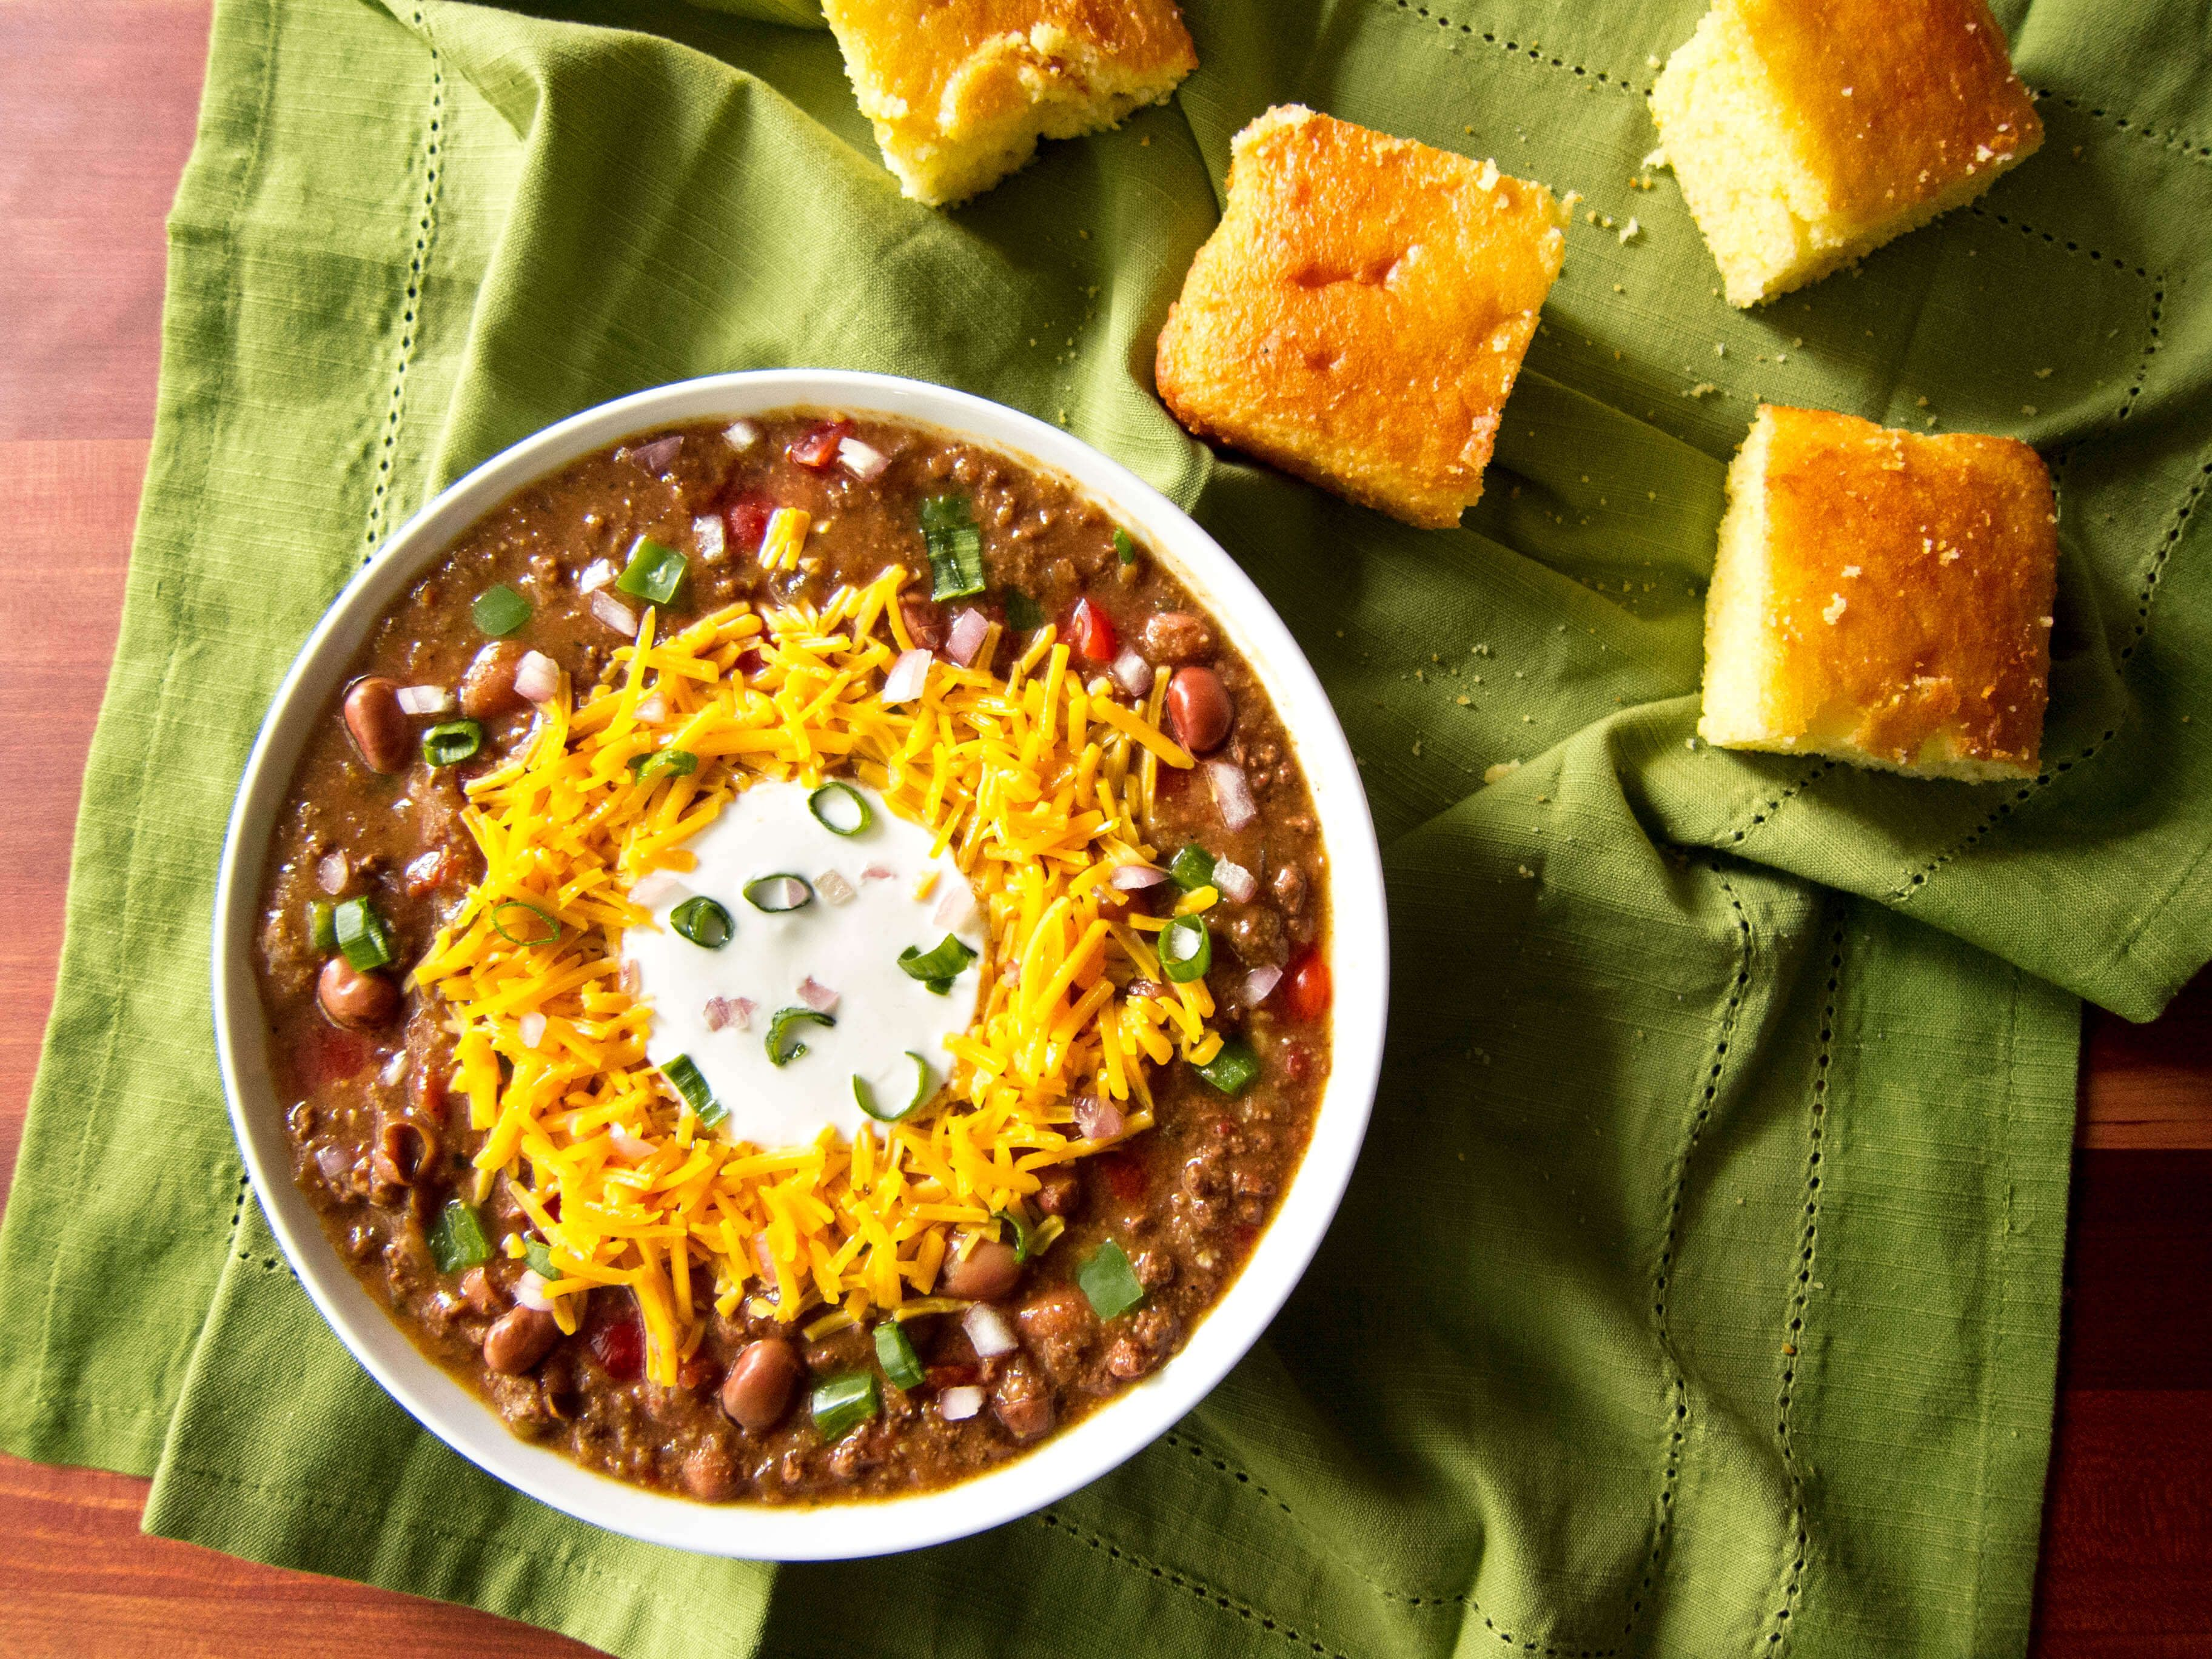 Instant Pot Chili, made using ground beef and dried beans, is the perfect comfort food for a fall or wintry evening. It's also a great dish to feed a crowd, or for game day. Masa Harina (corn meal) thickens the chili and gives it a corn flavor. Add your choice of toppings to take this chili over the top!